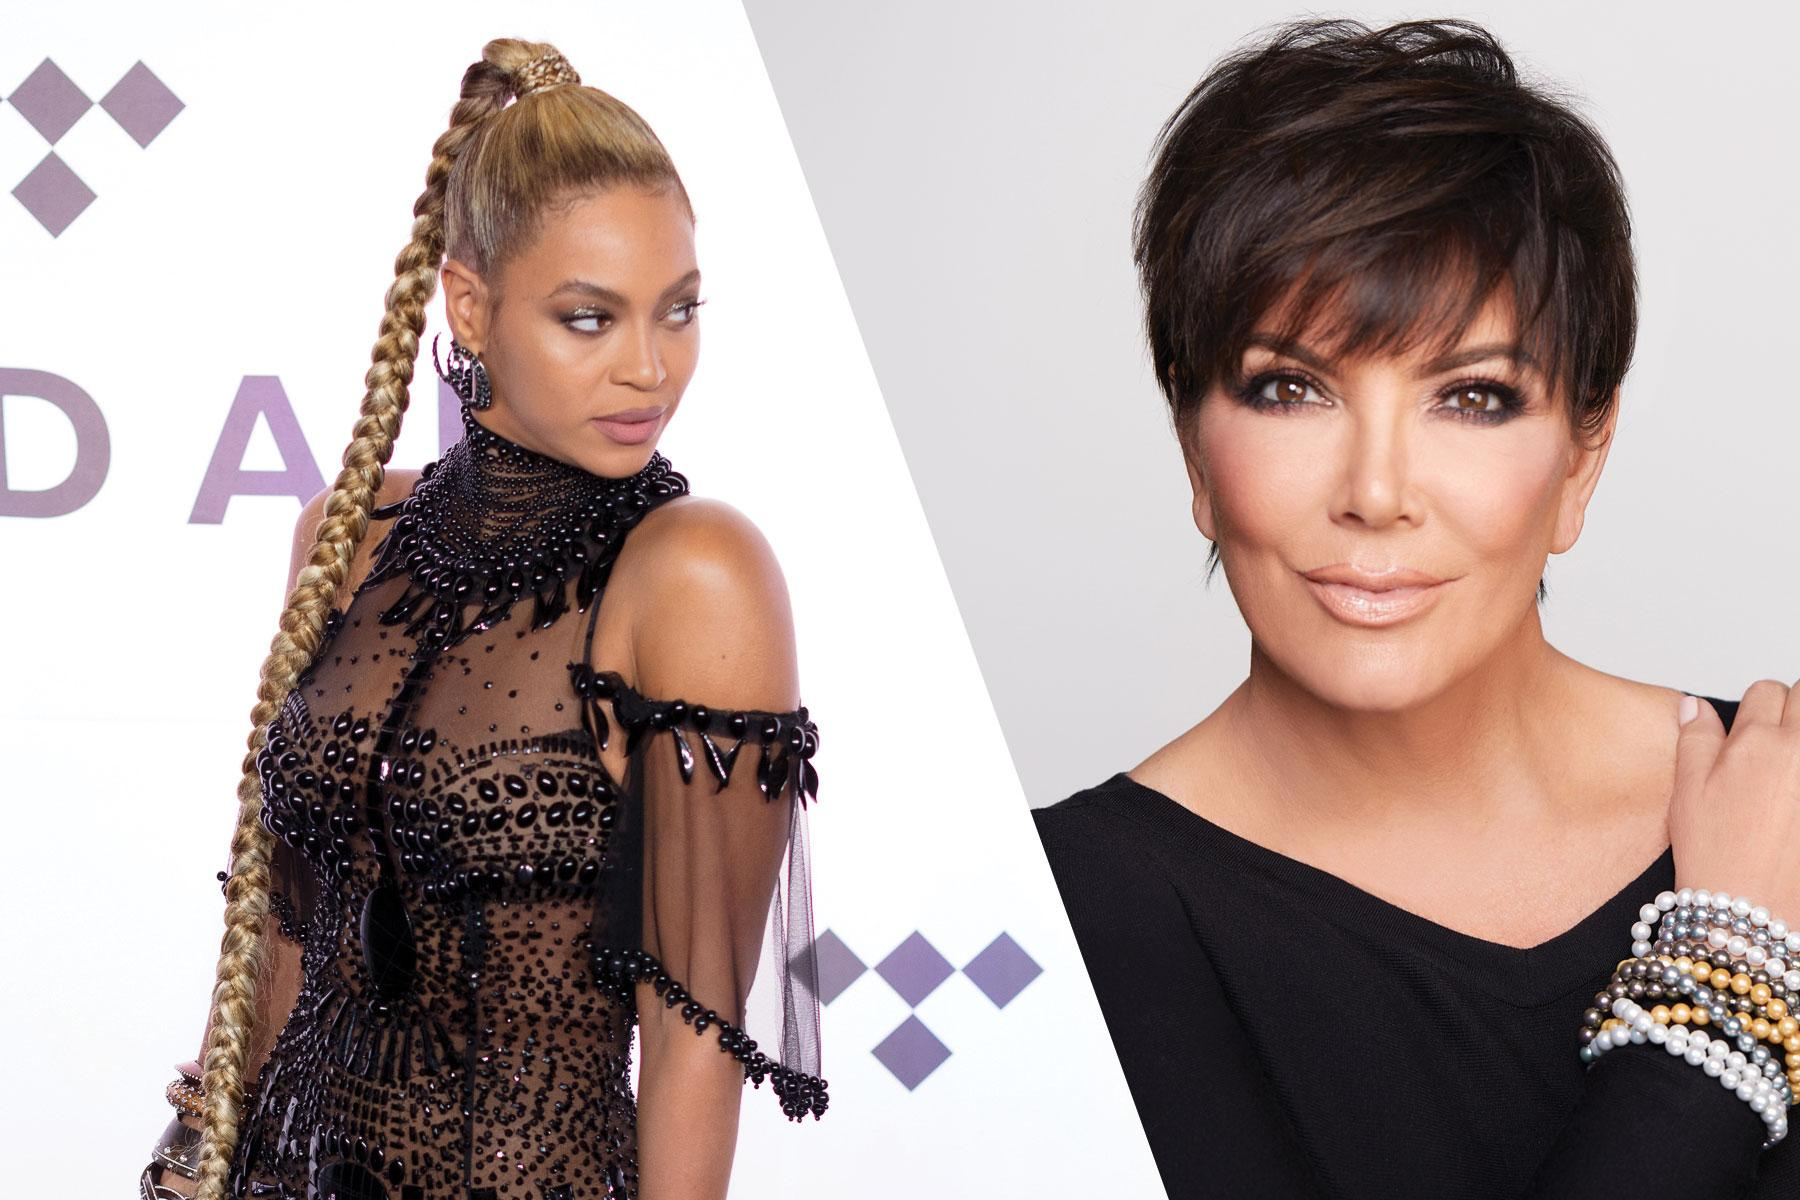 IT'S NEVER TOO LATE: Jay-Z Cheated on Beyoncé With Kris Jenner! Kris Jenner is 'Becky With the Good Hair' image